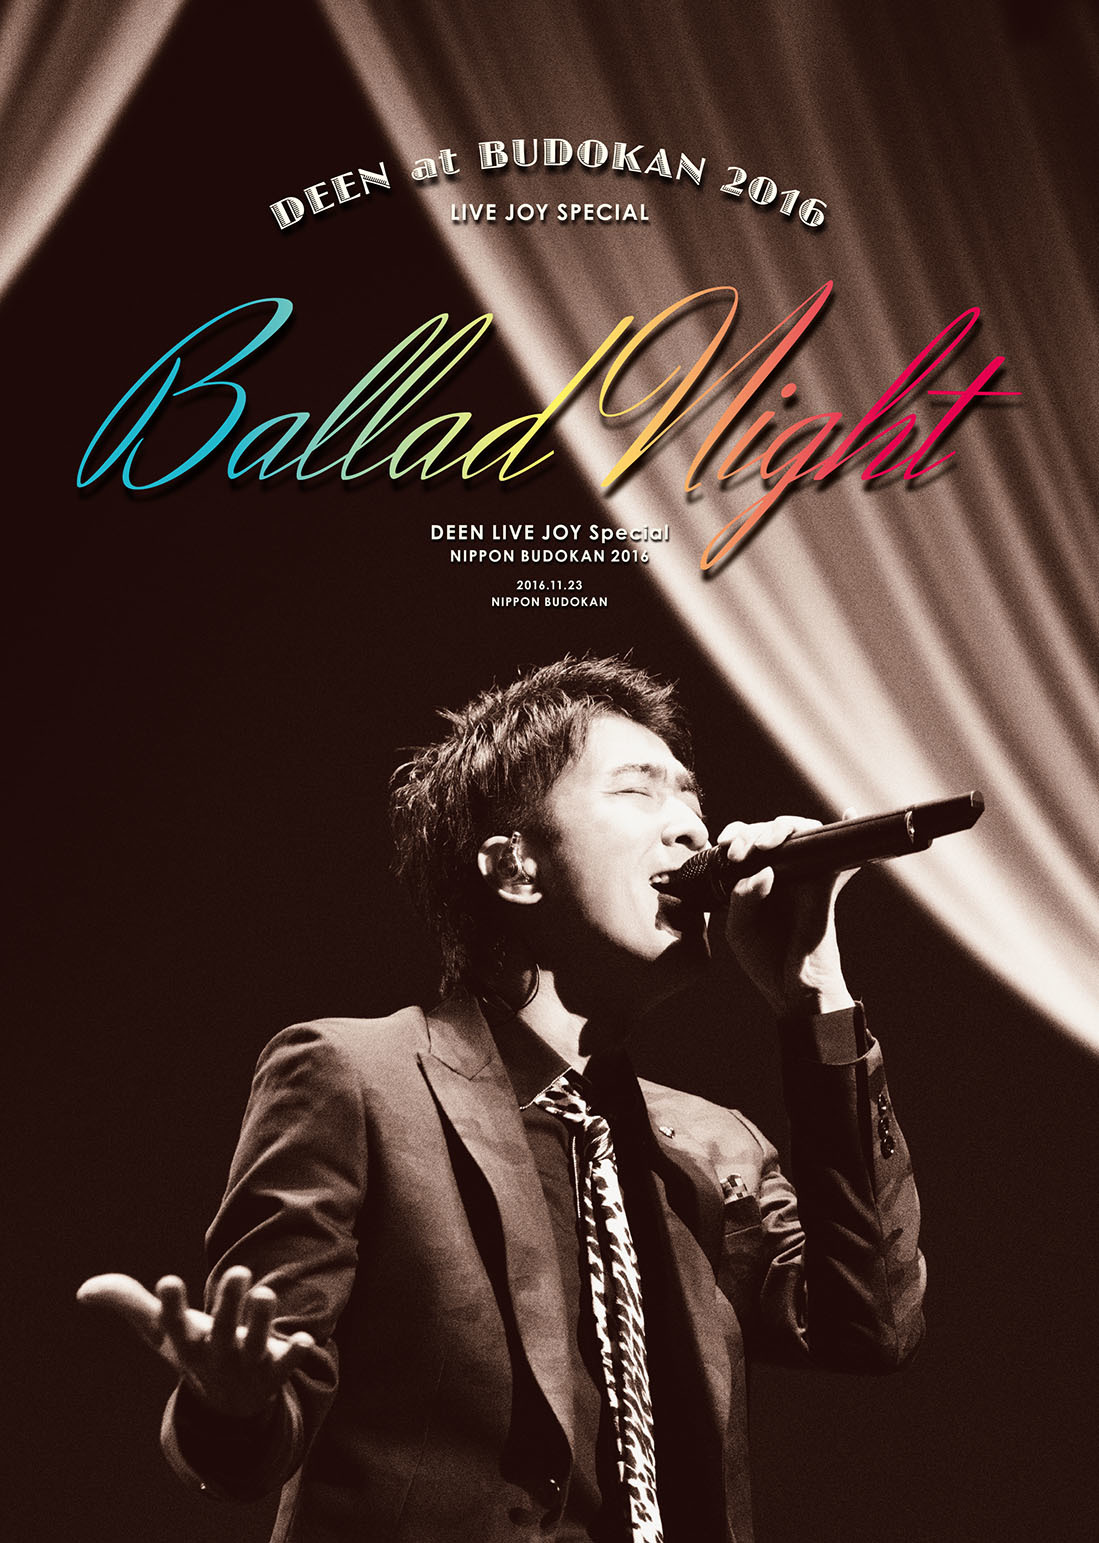 DEEN『DEEN at 武道館 2016 LIVE JOY SPECIAL ~Ballad Night~』Blu-ray